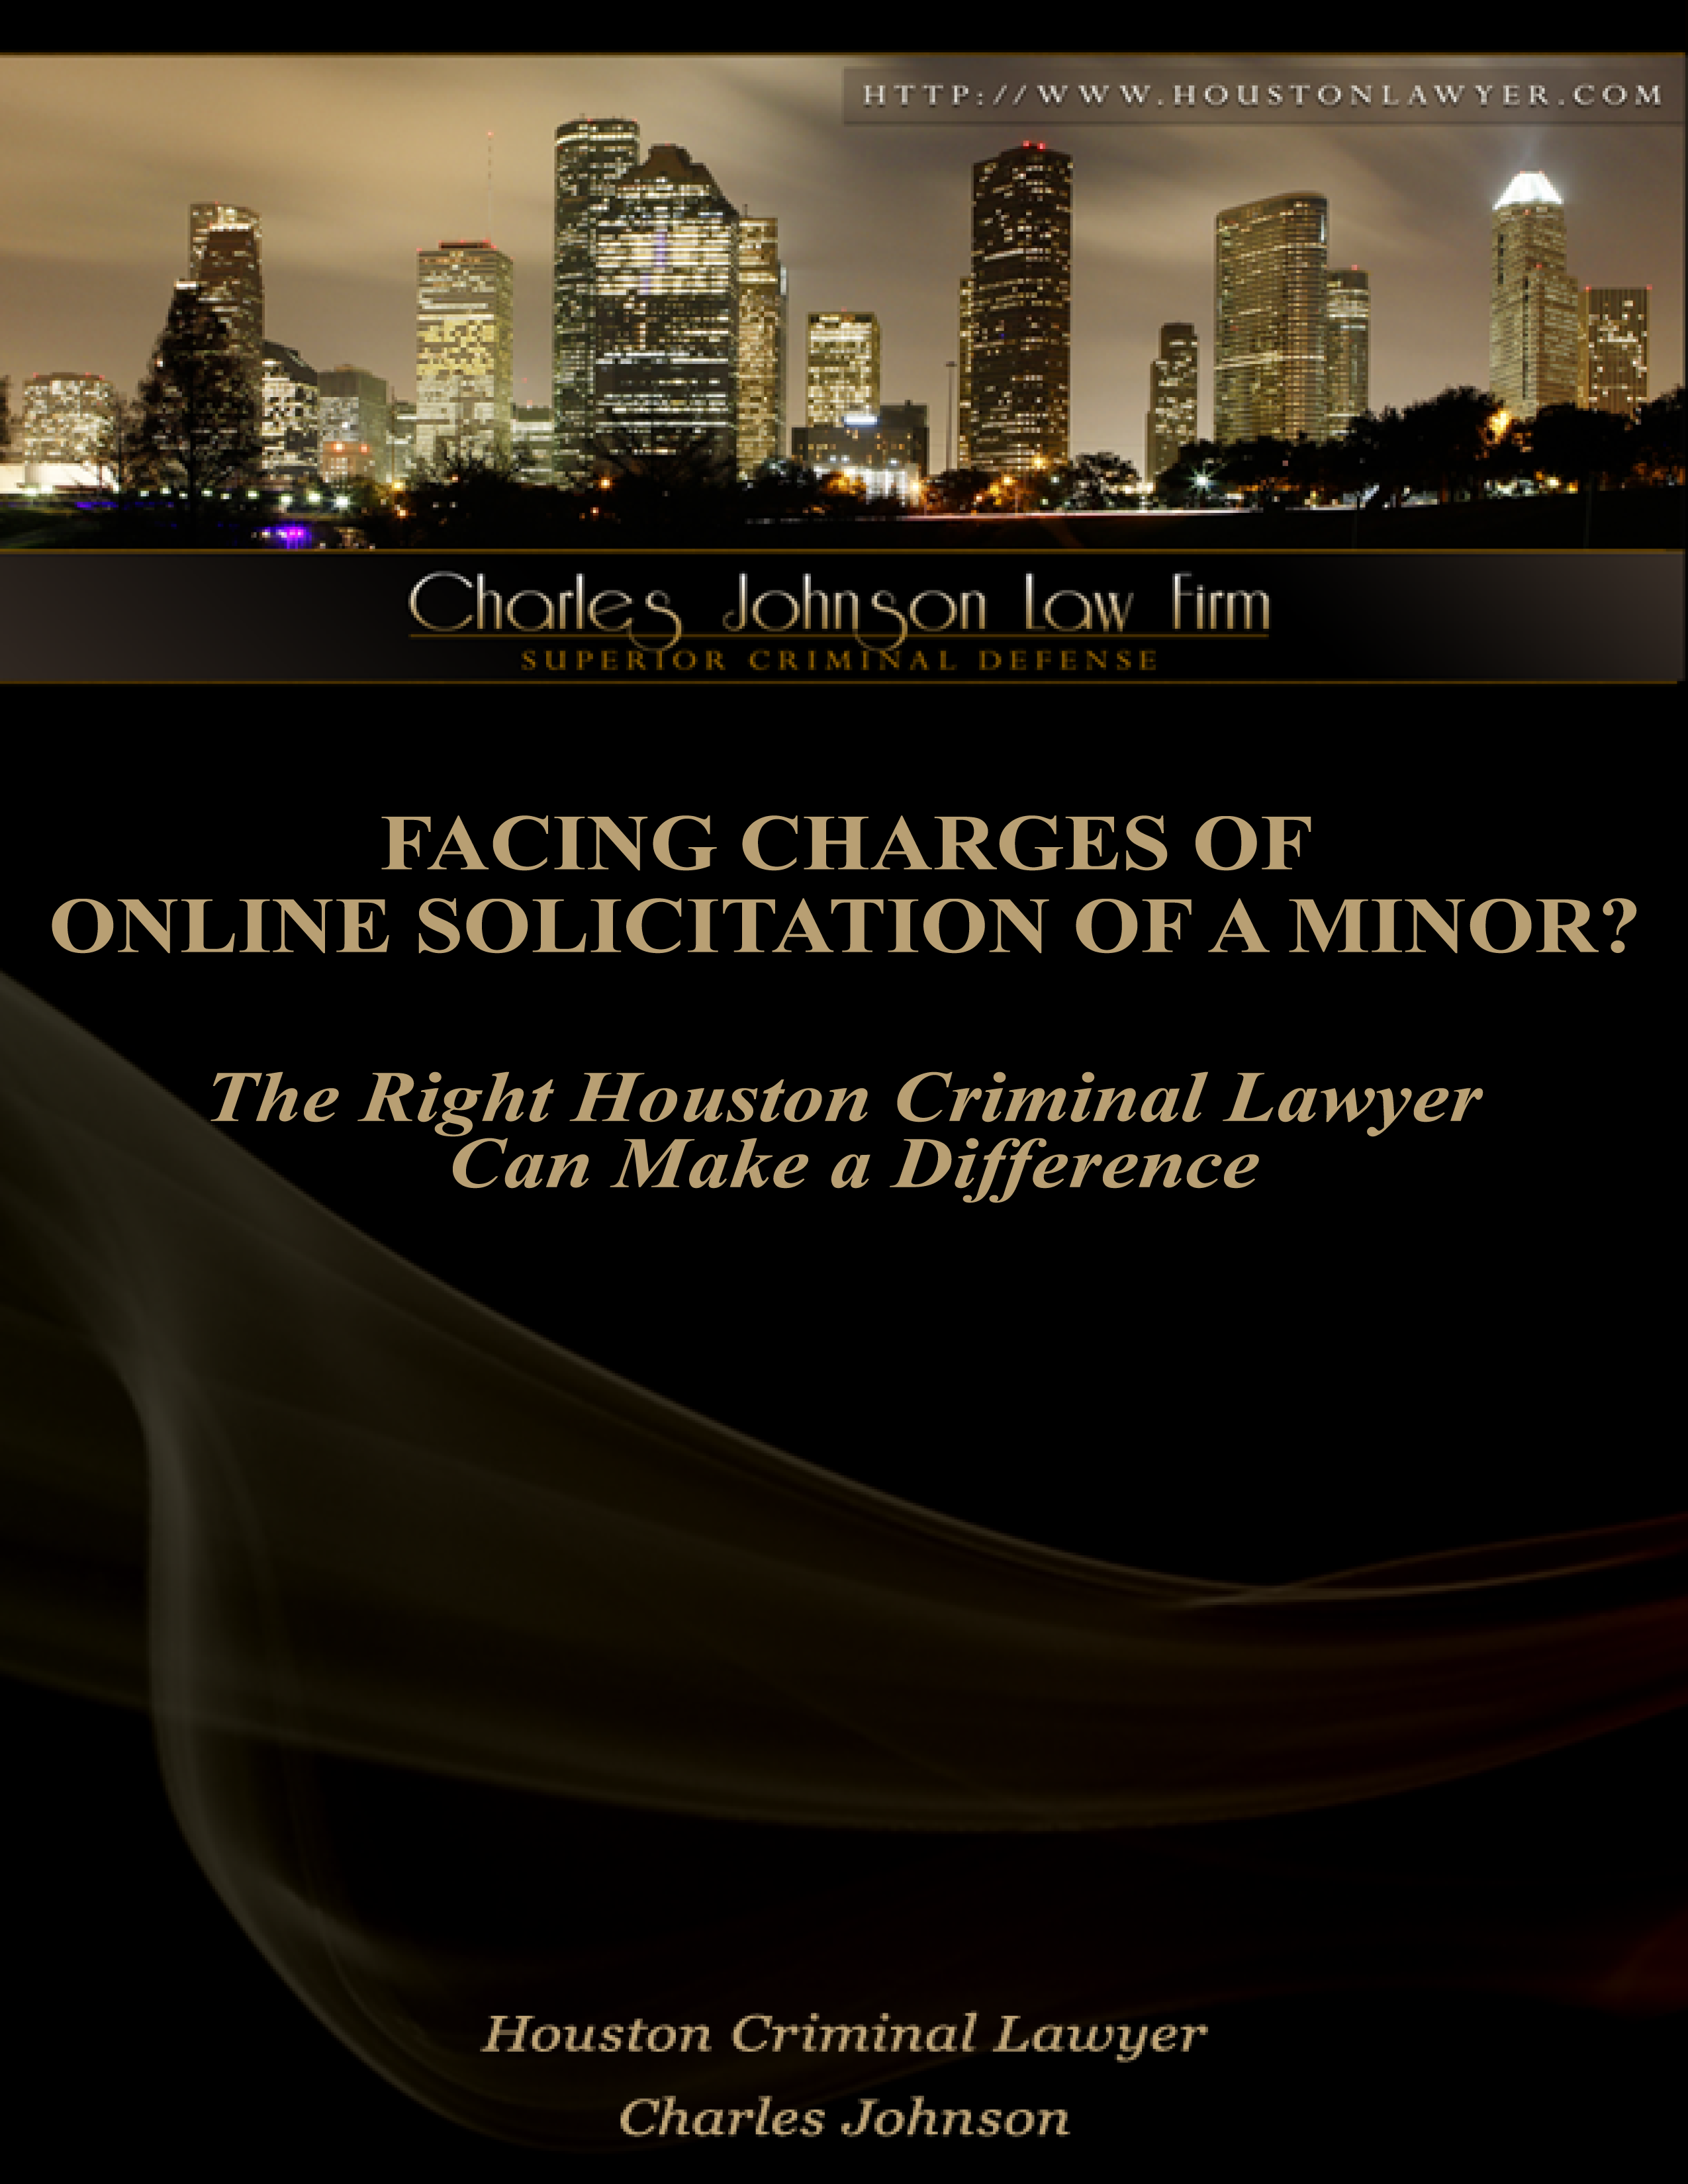 Facing Charges of Online Solicitation of a Minor? The Right Houston Criminal Lawyer Can Make a Difference